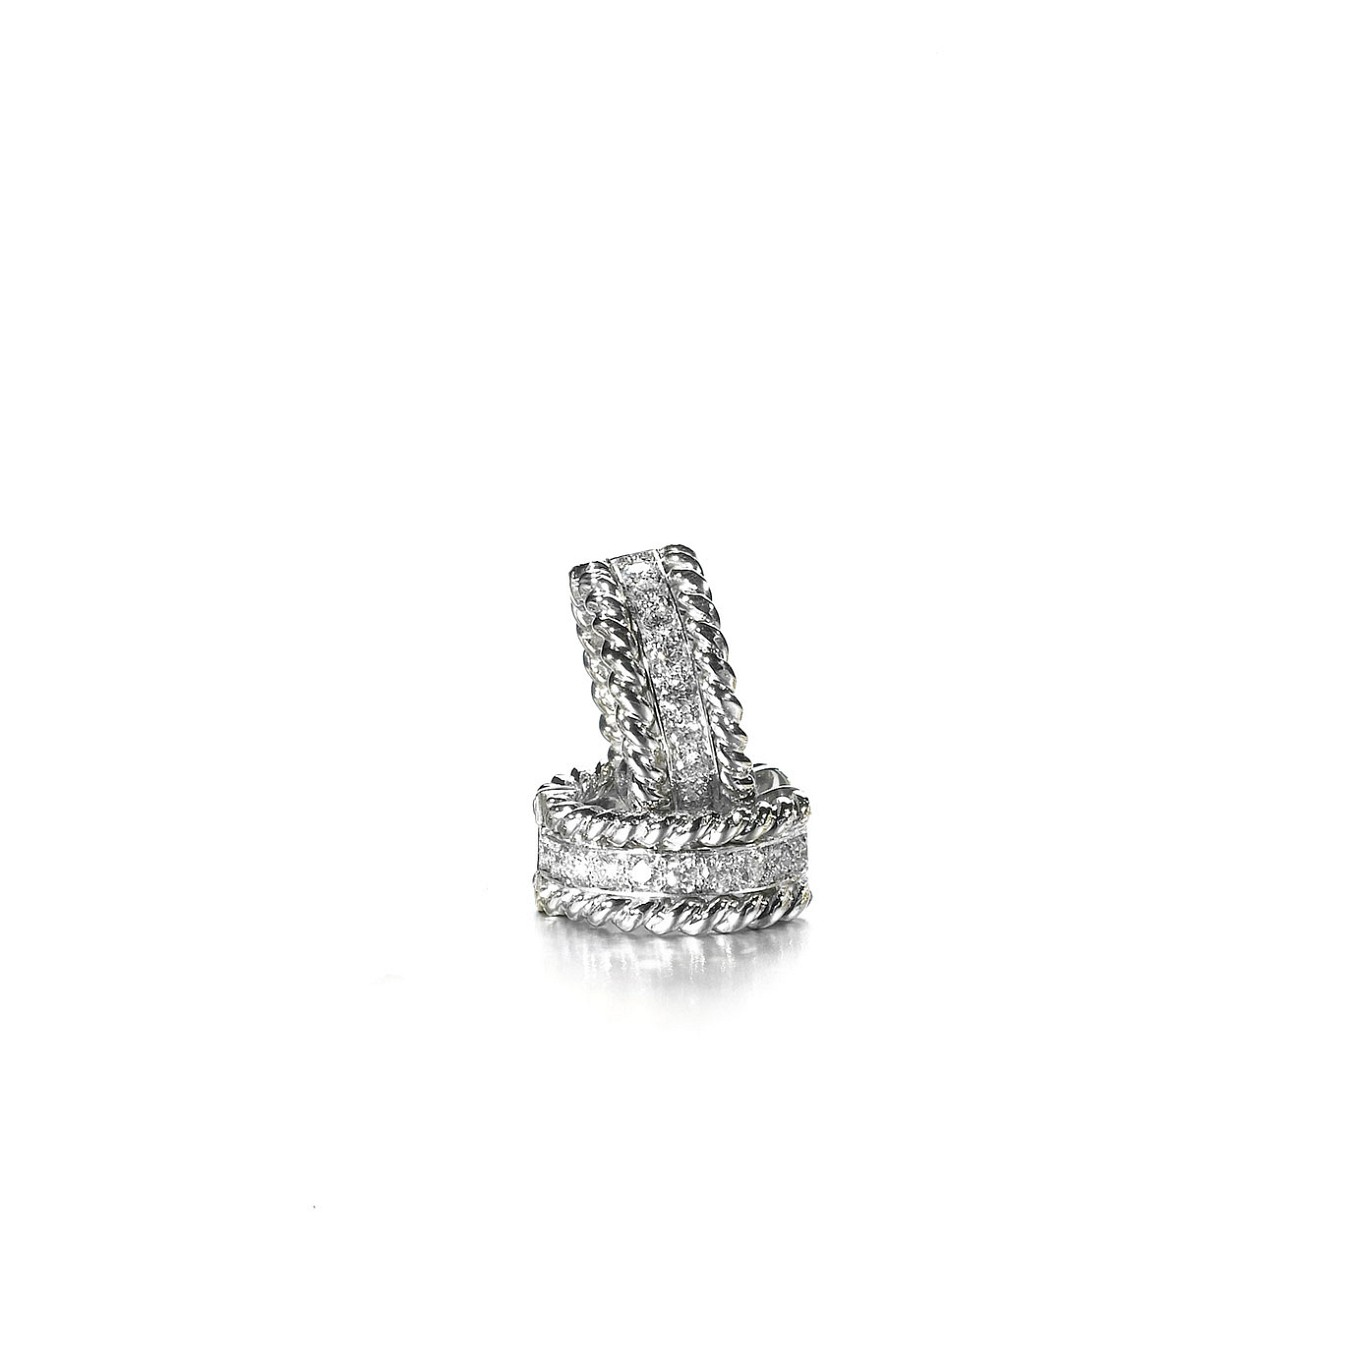 Braid diamond huggies in white gold